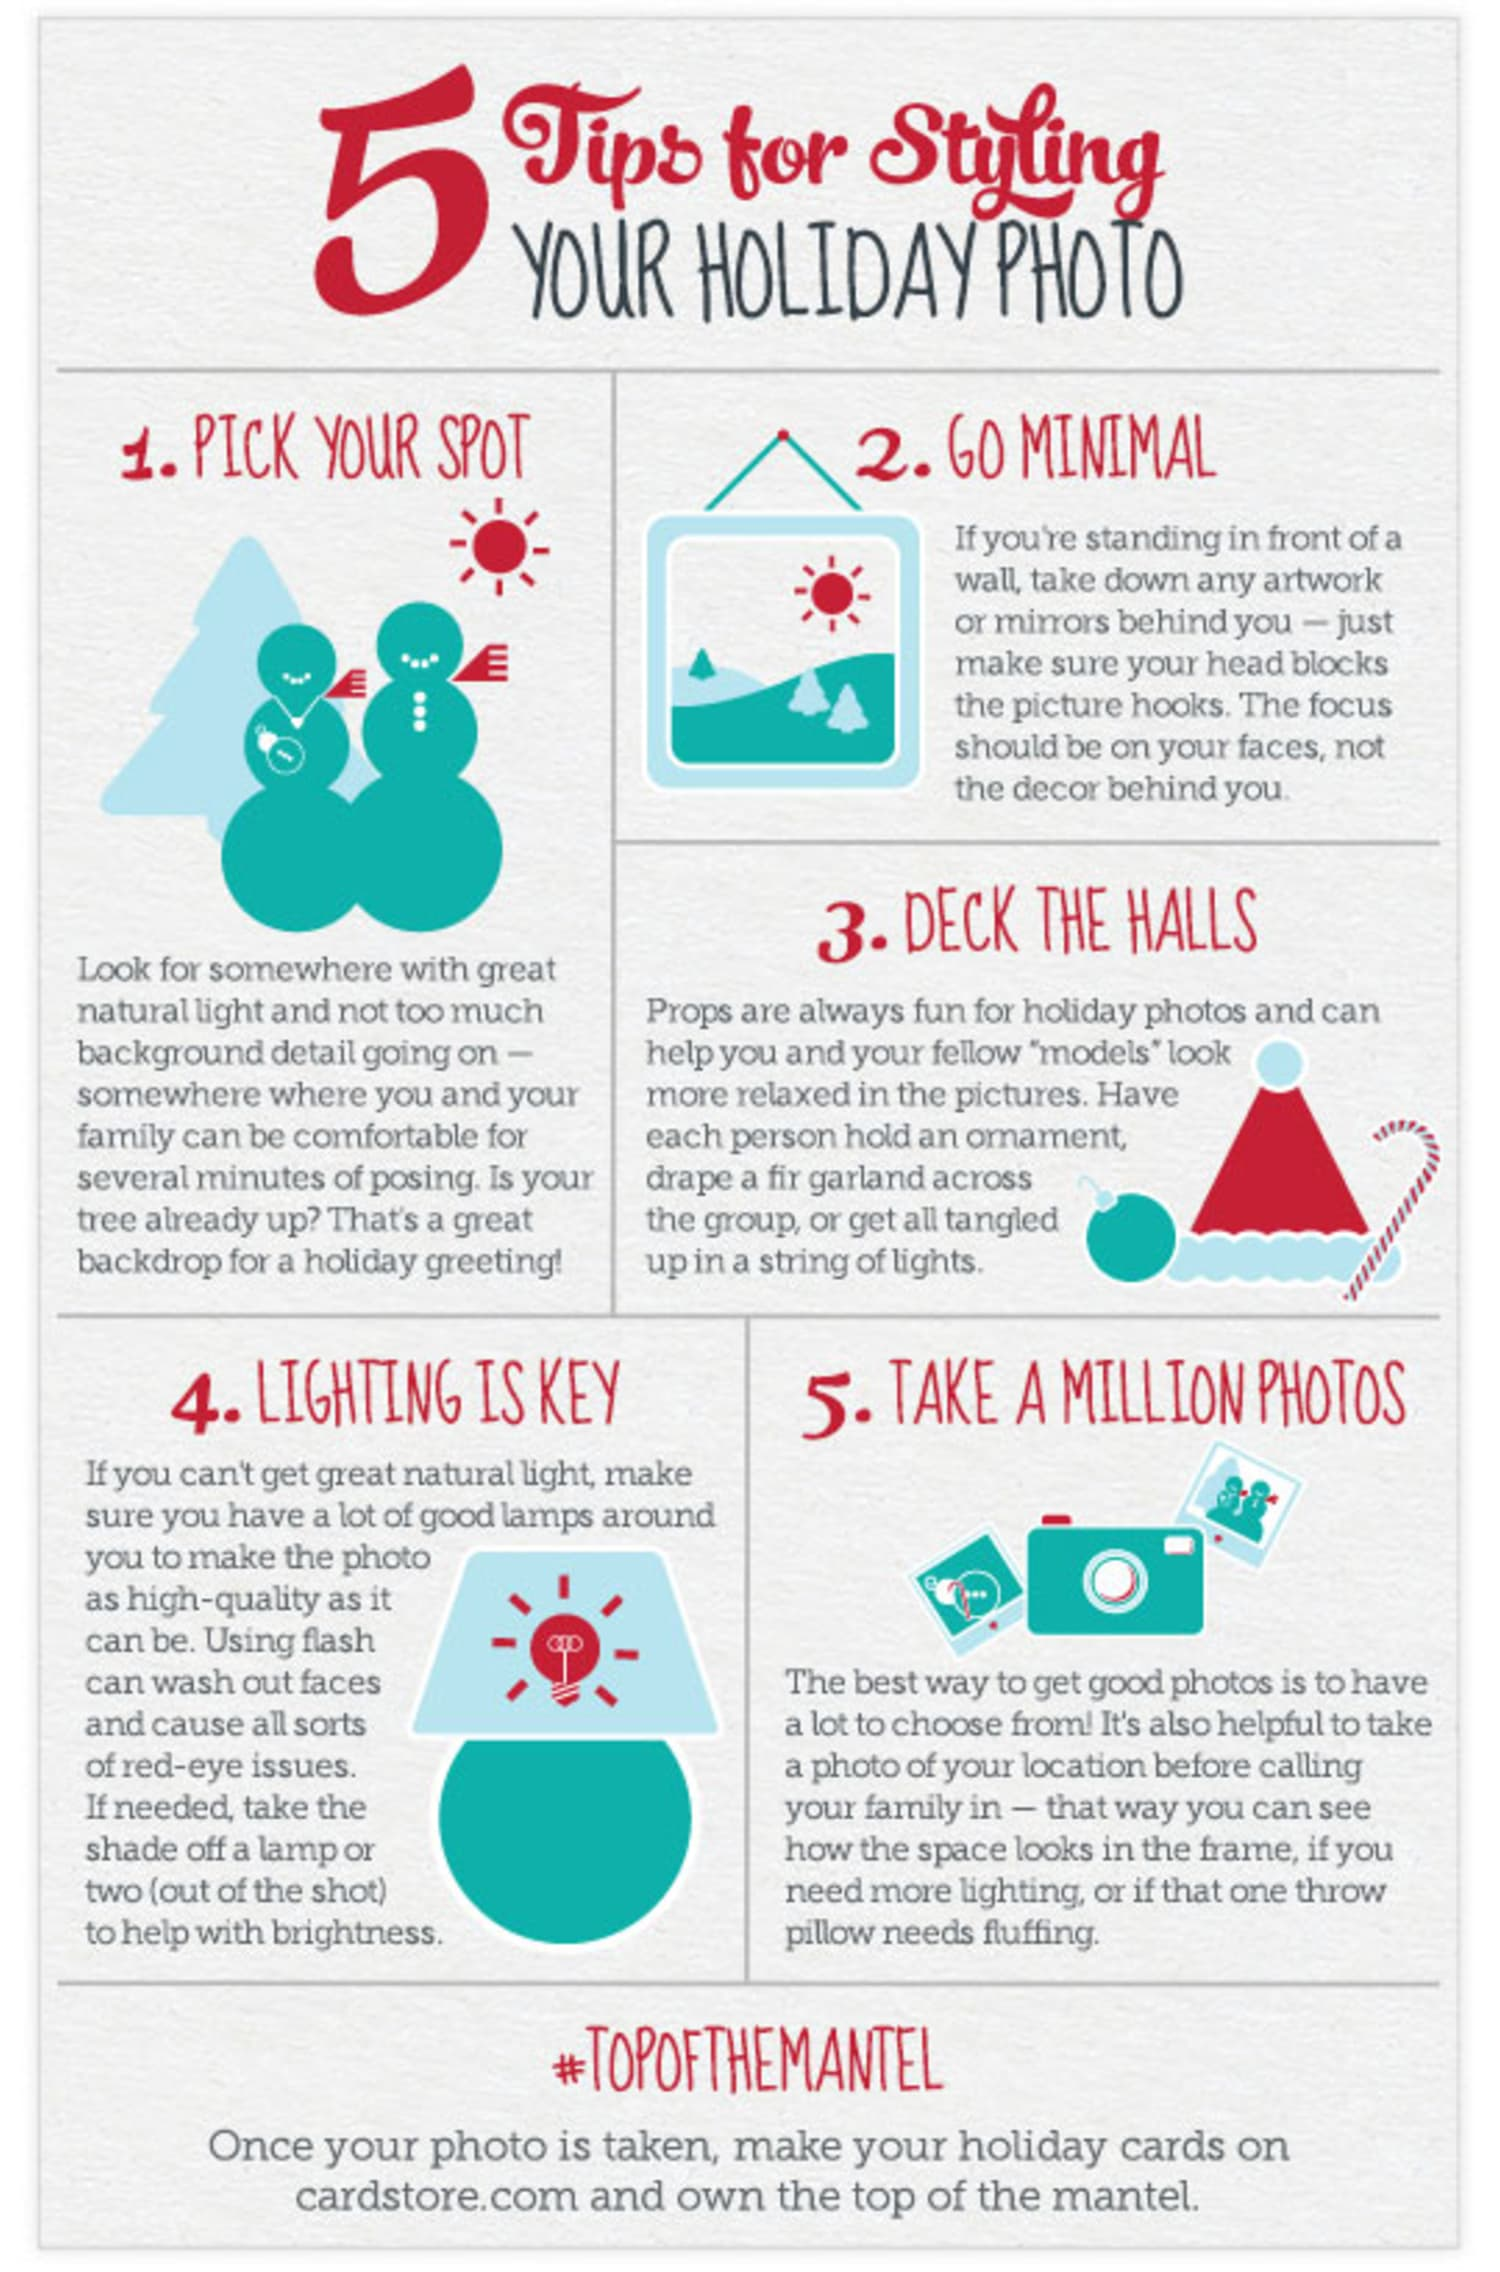 5 Tips for Styling Your Holiday Photo at Home | Apartment